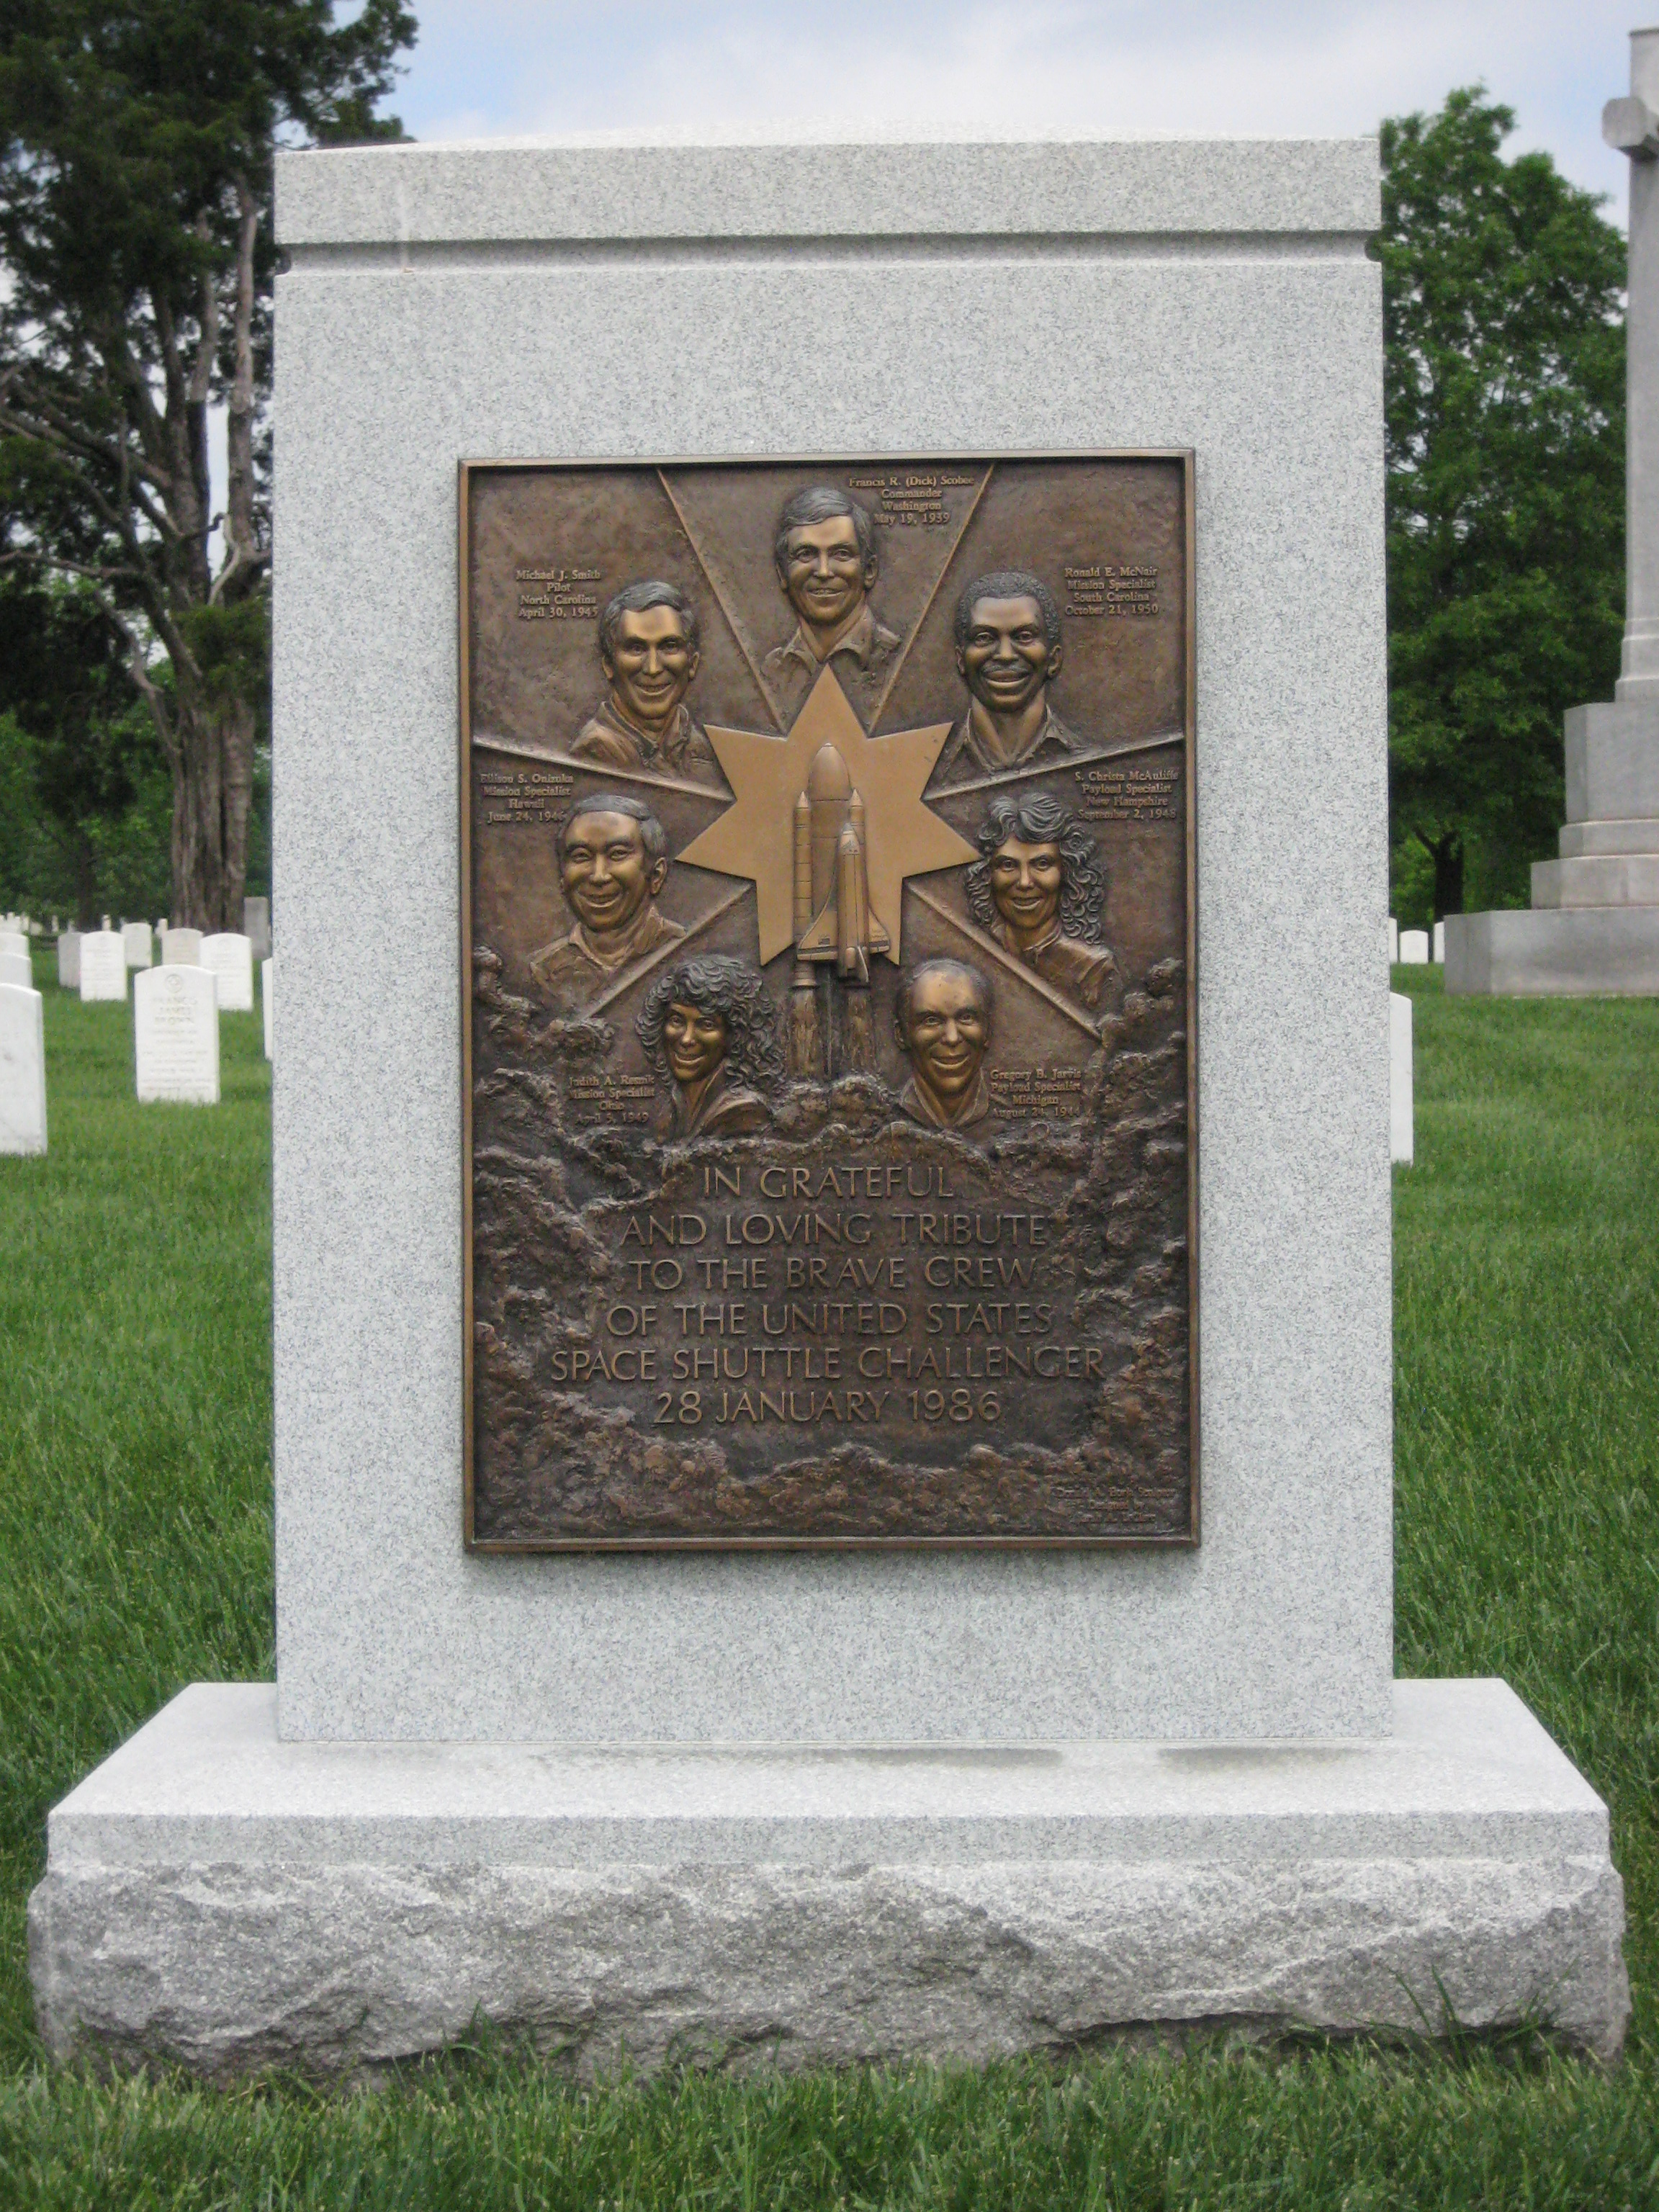 File:Challenger Memorial1.JPG - Wikimedia Commons